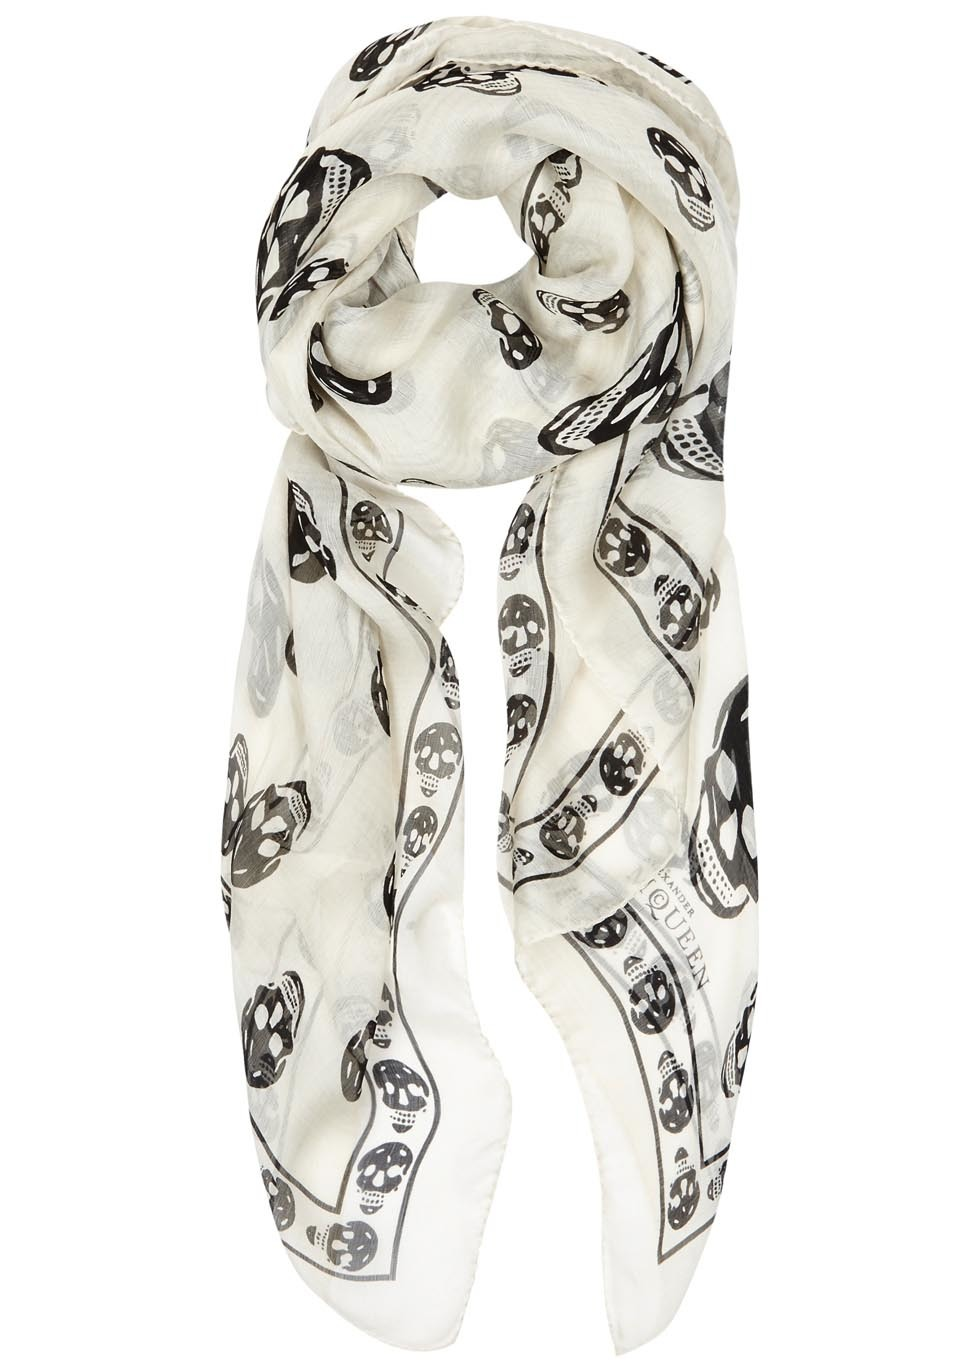 Cream Skull Print Silk Chiffon Scarf - predominant colour: white; secondary colour: black; occasions: casual; type of pattern: light; style: regular; size: standard; material: silk; trends: monochrome; pattern: patterned/print; multicoloured: multicoloured; season: a/w 2016